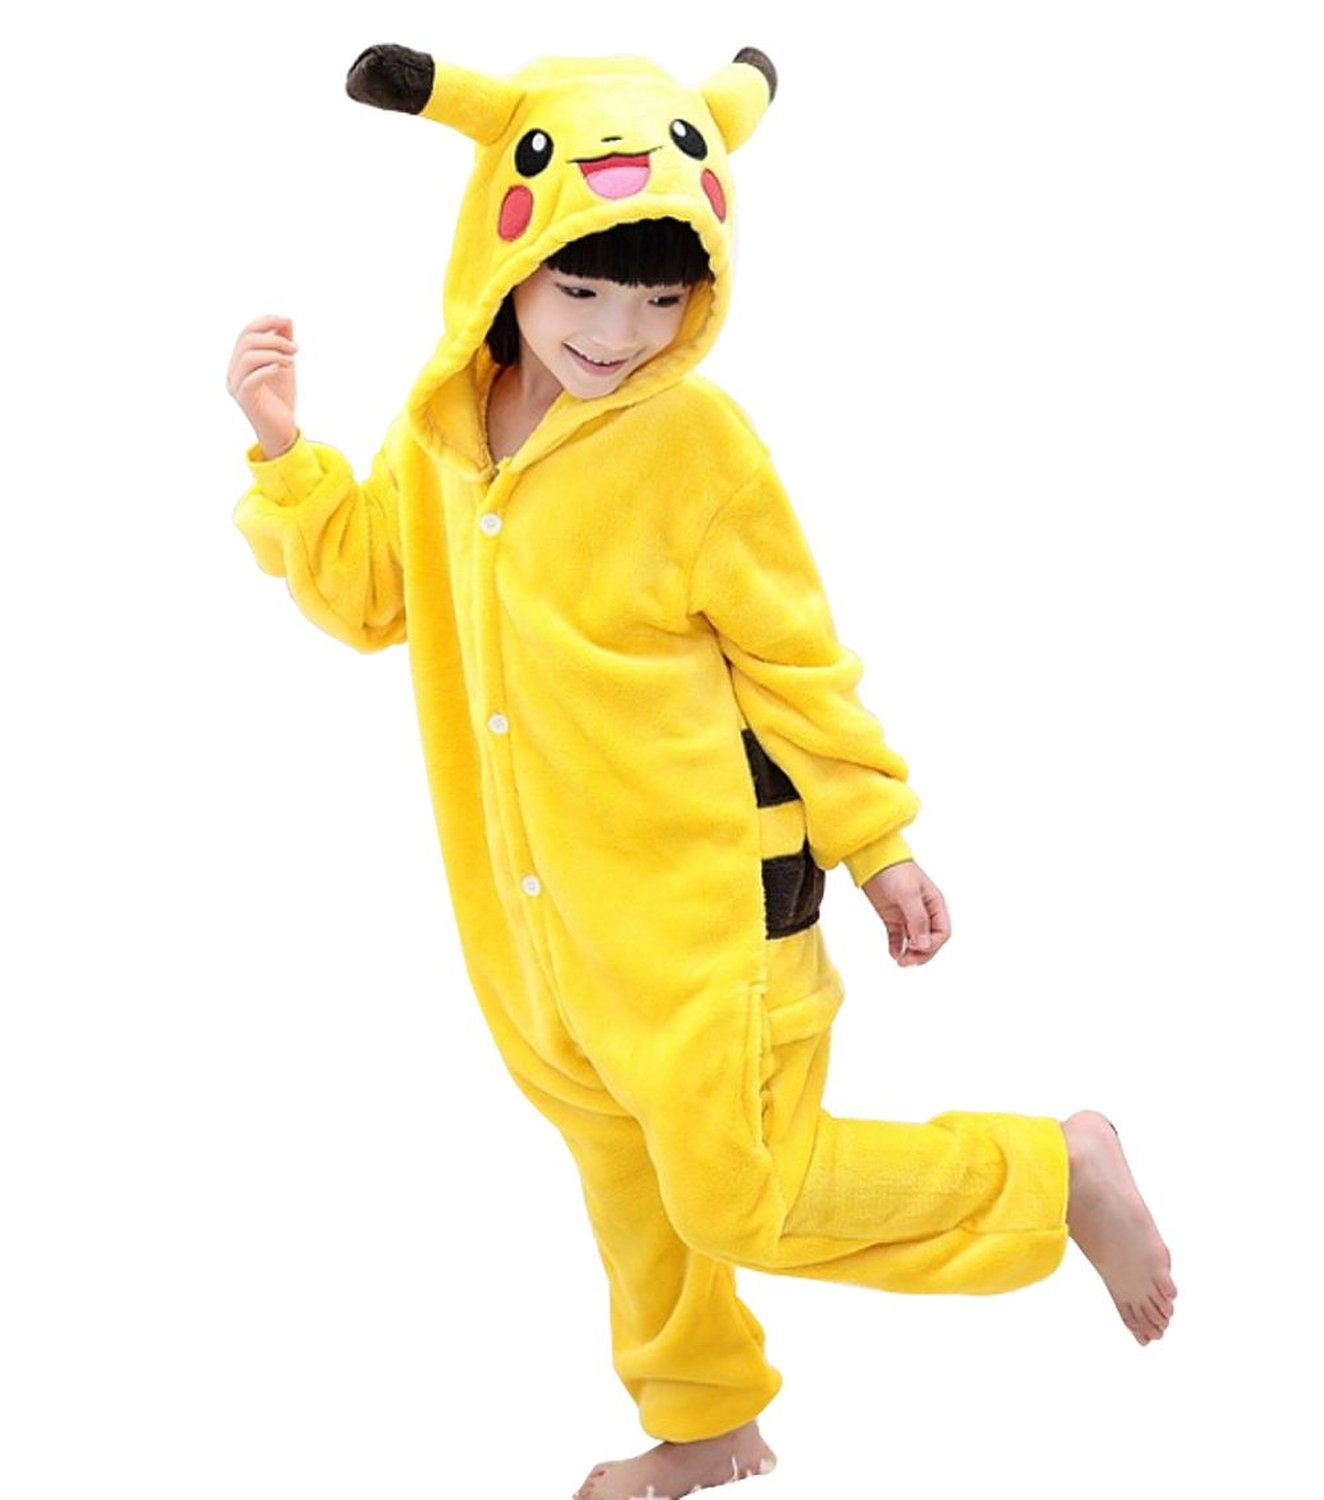 Pokemo Pikachu Pegasu Costume Pajamas Unisex Children Pikachu Animal Onesize Cosplay Sleepwear Cute Animal Pajamas Jumpsuits